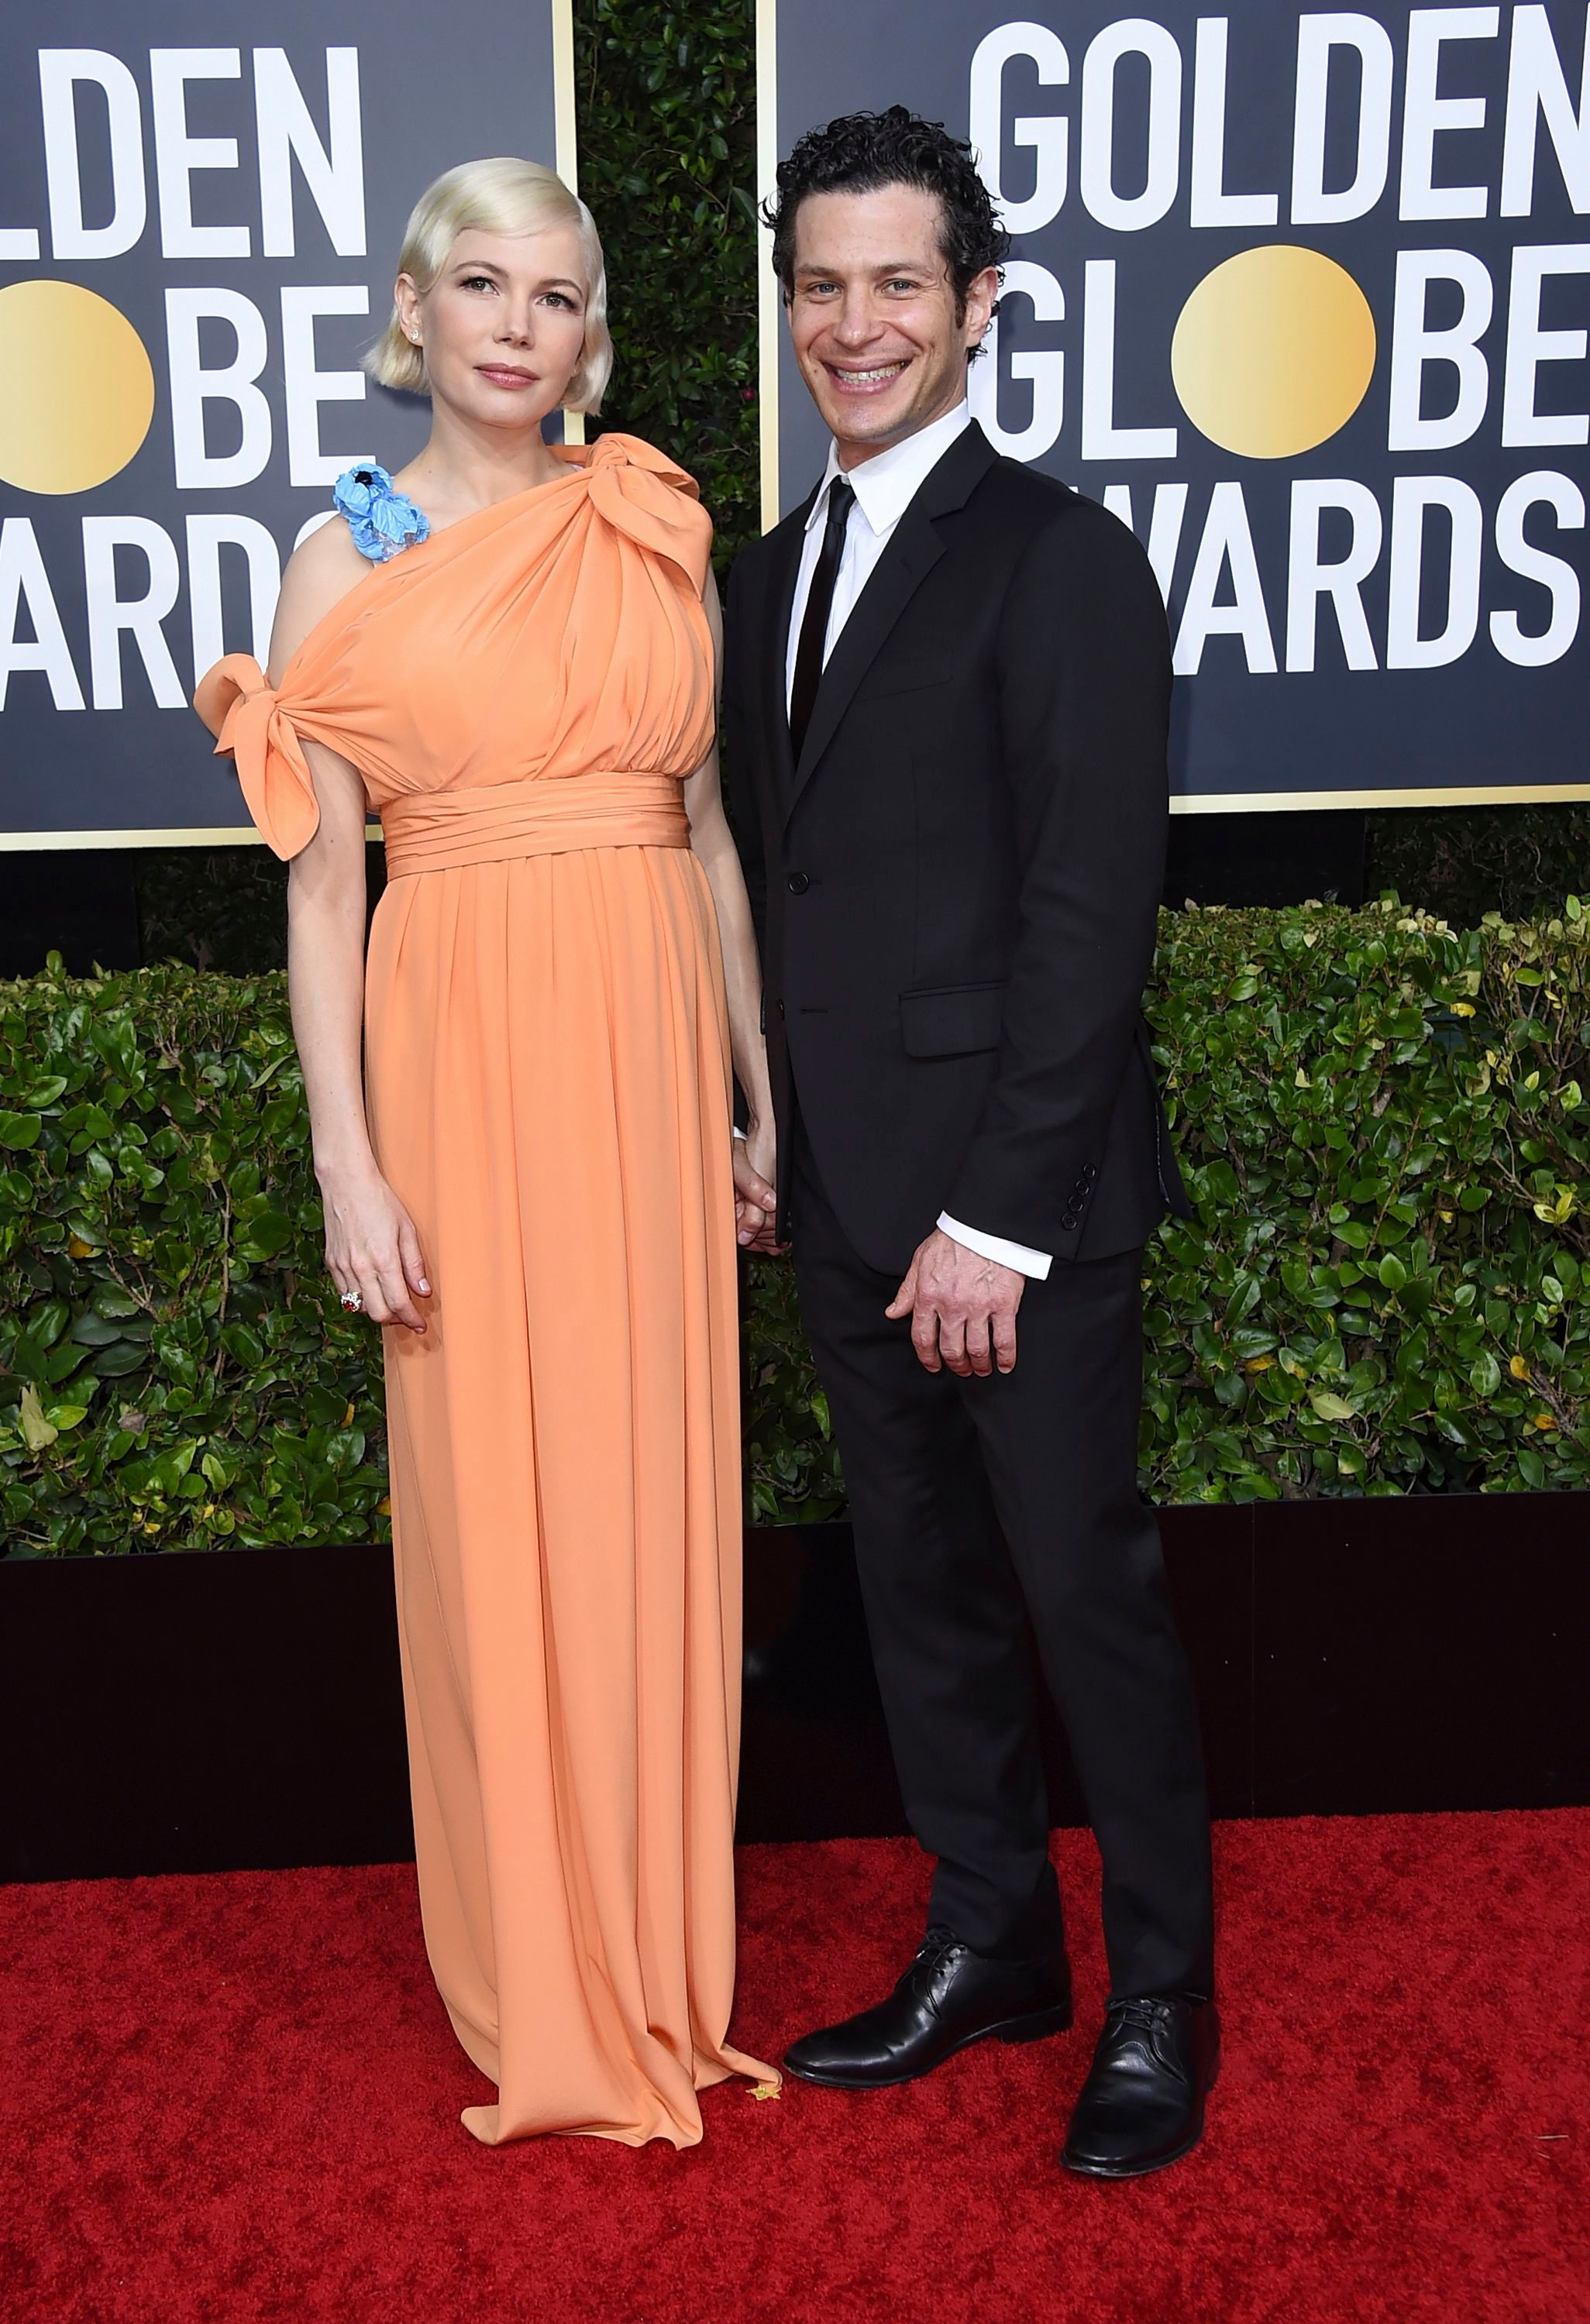 Michelle Williams, Thomas Kail. Michelle Williams, left, and Thomas Kail arrive at the 77th annual Golden Globe Awards at the Beverly Hilton Hotel, in Beverly Hills, Calif77th Annual Golden Globe Awards - Arrivals, Beverly Hills, USA - 05 Jan 2020